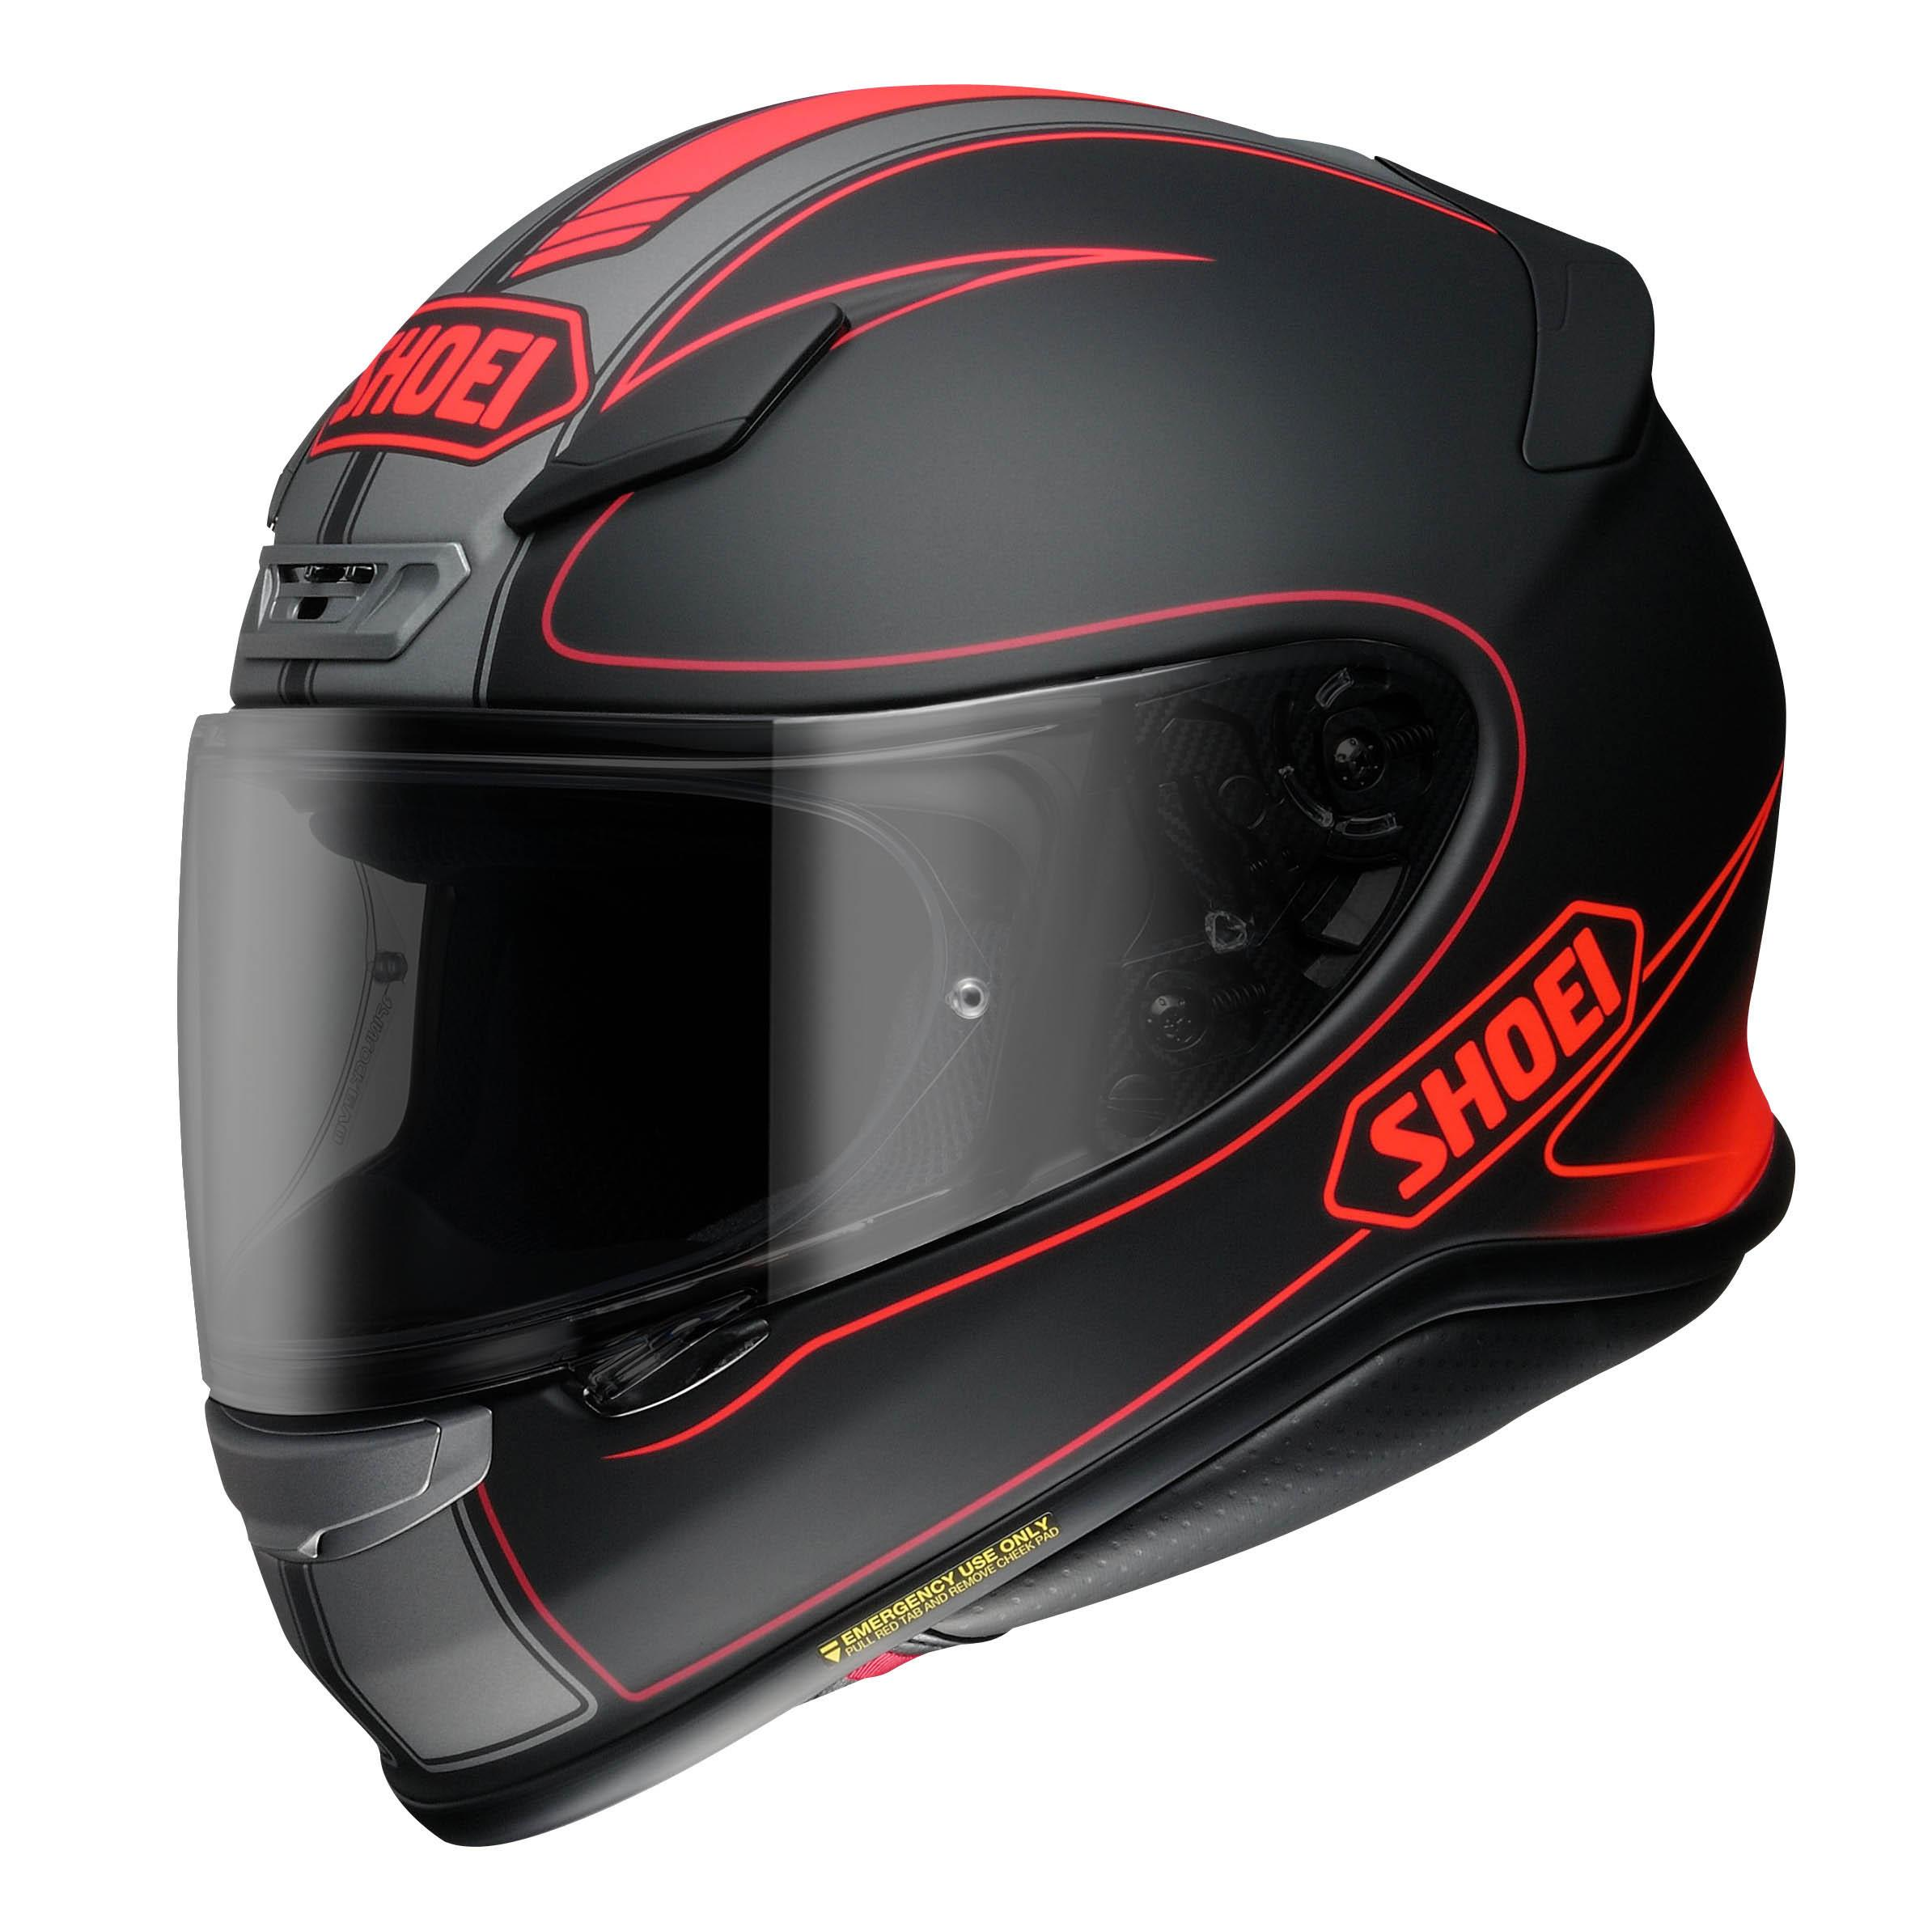 shoei nxr flagger helmet tc 1 red online motorcycle accessories australia scm. Black Bedroom Furniture Sets. Home Design Ideas